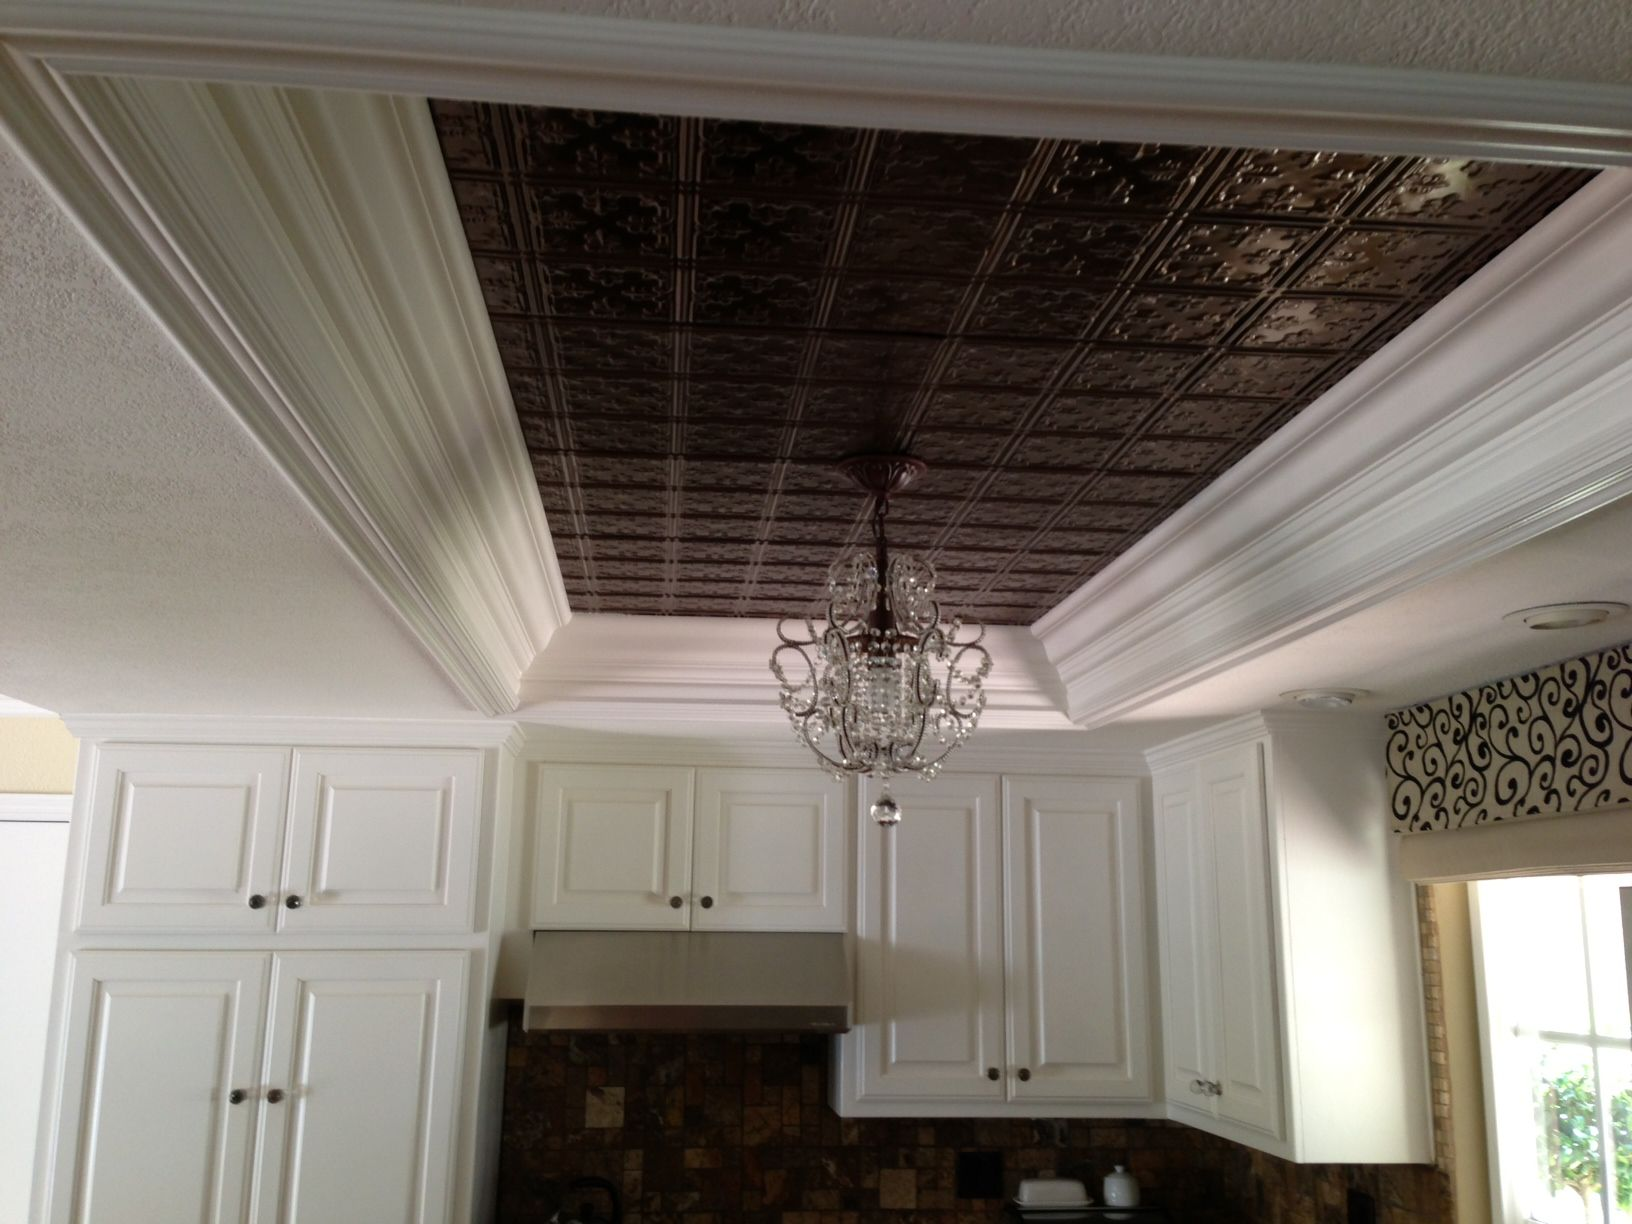 Kitchen ceiling tiles and hanging light replace dated fluorescent kitchen ceiling tiles and hanging light replace dated fluorescent lighting mozeypictures Choice Image